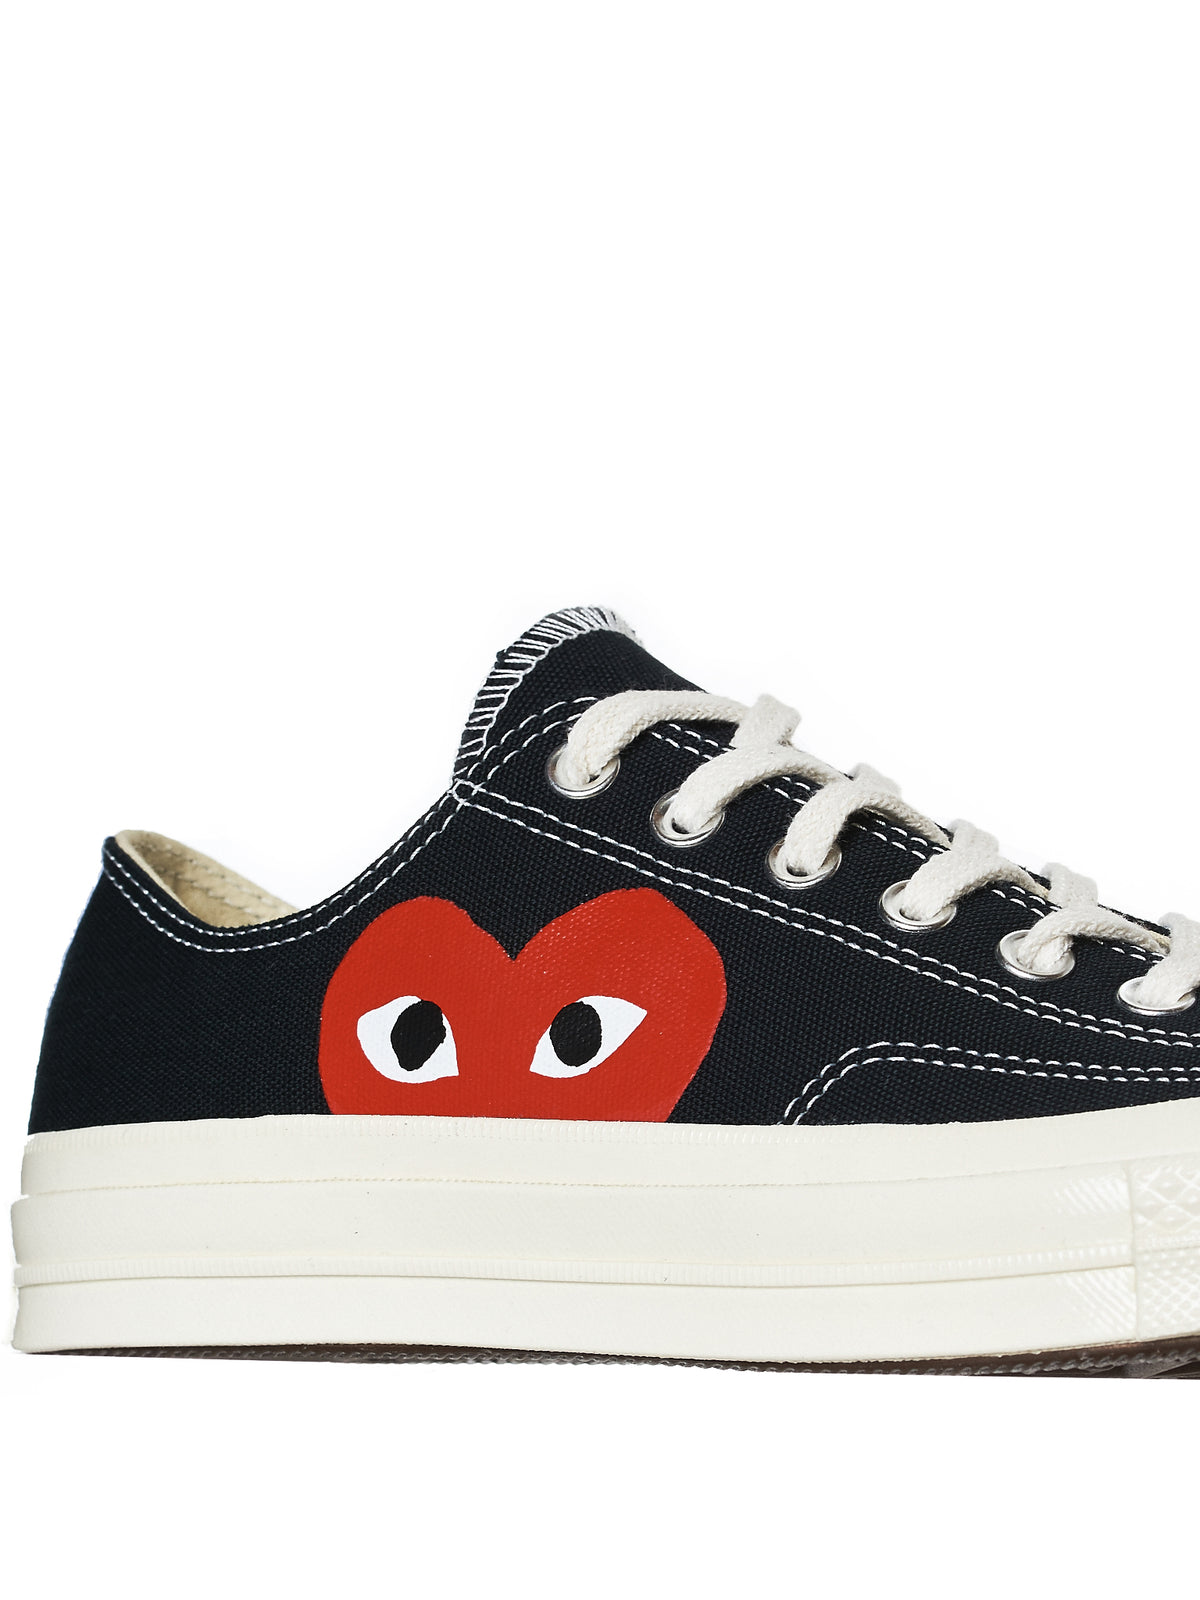 Converse x Play Classic Sneakers (AZ-K111-001-BLACK)